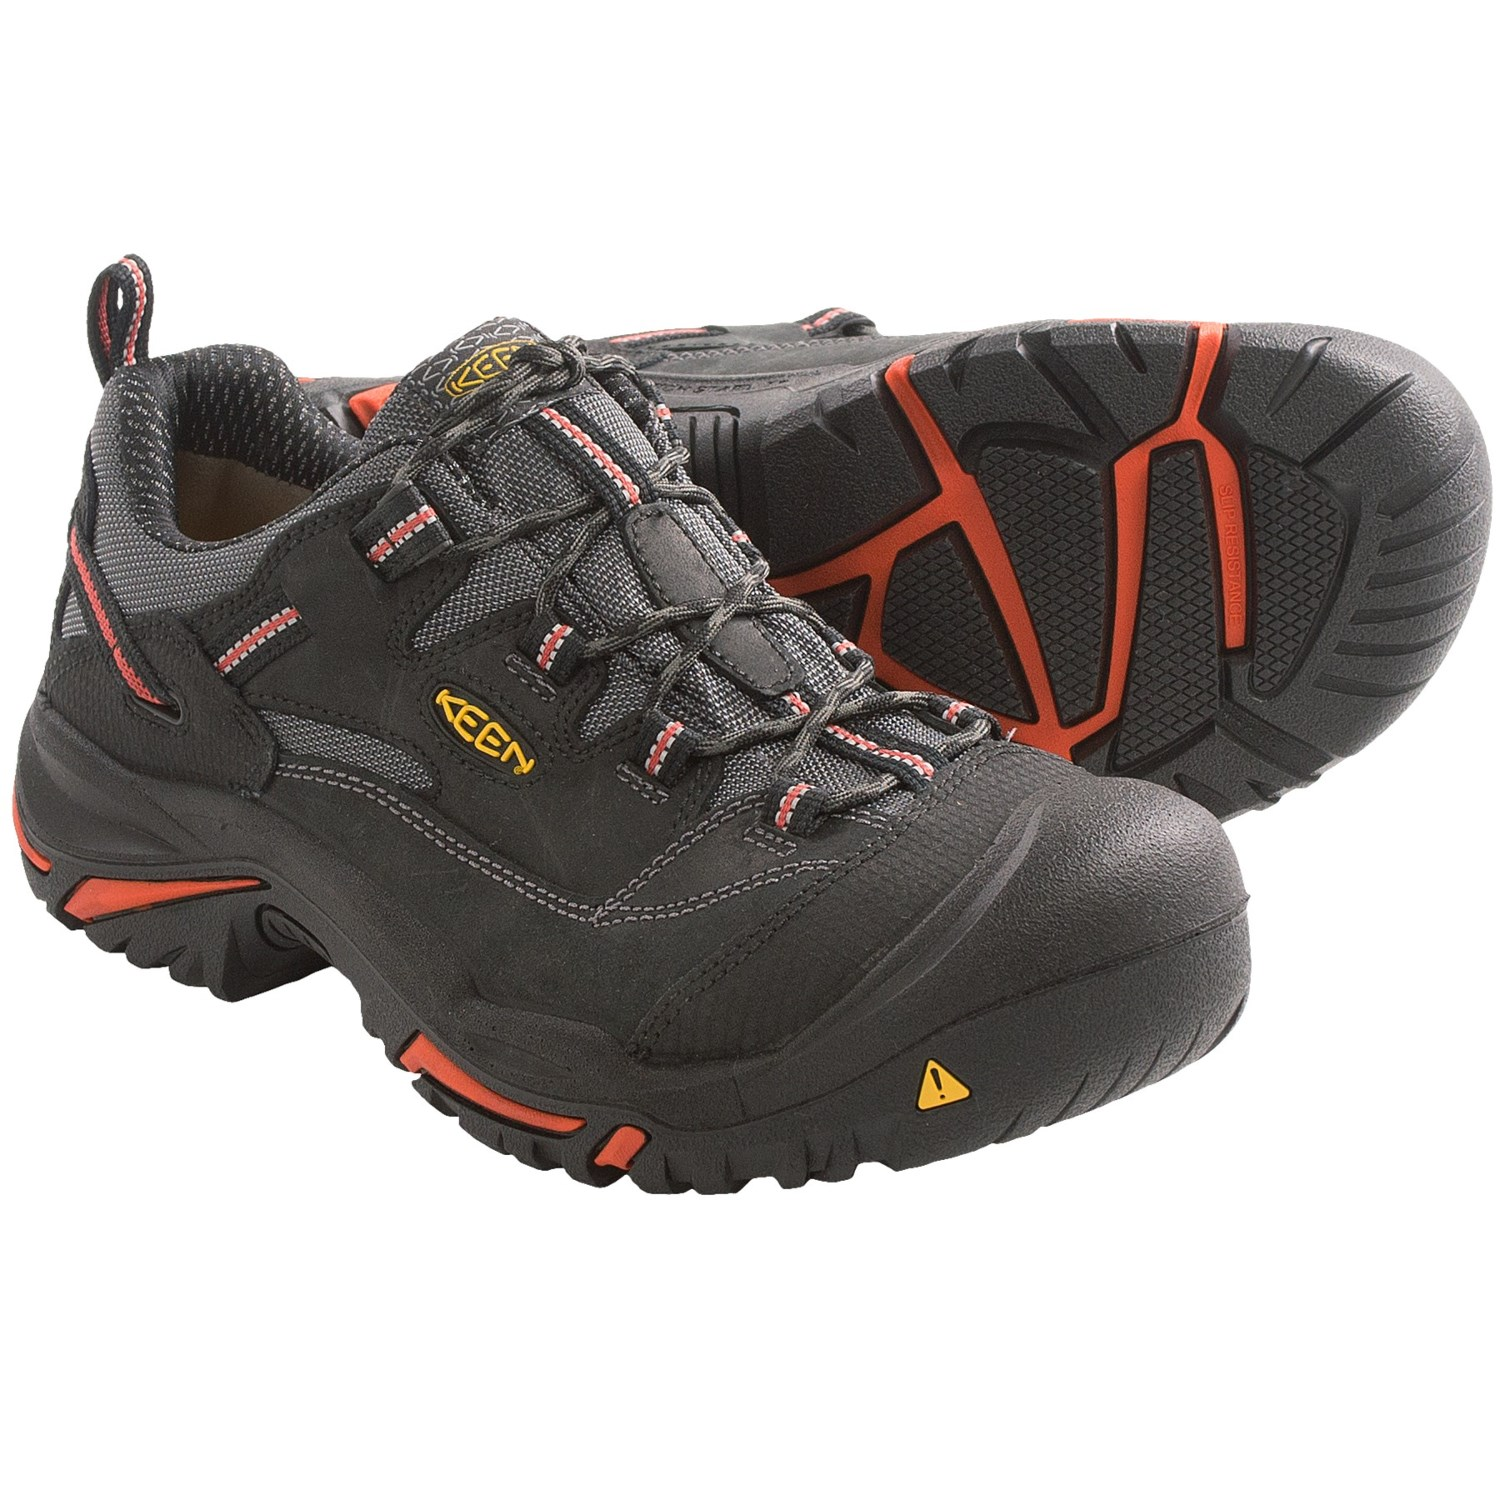 Keen Safety Shoes Reviews